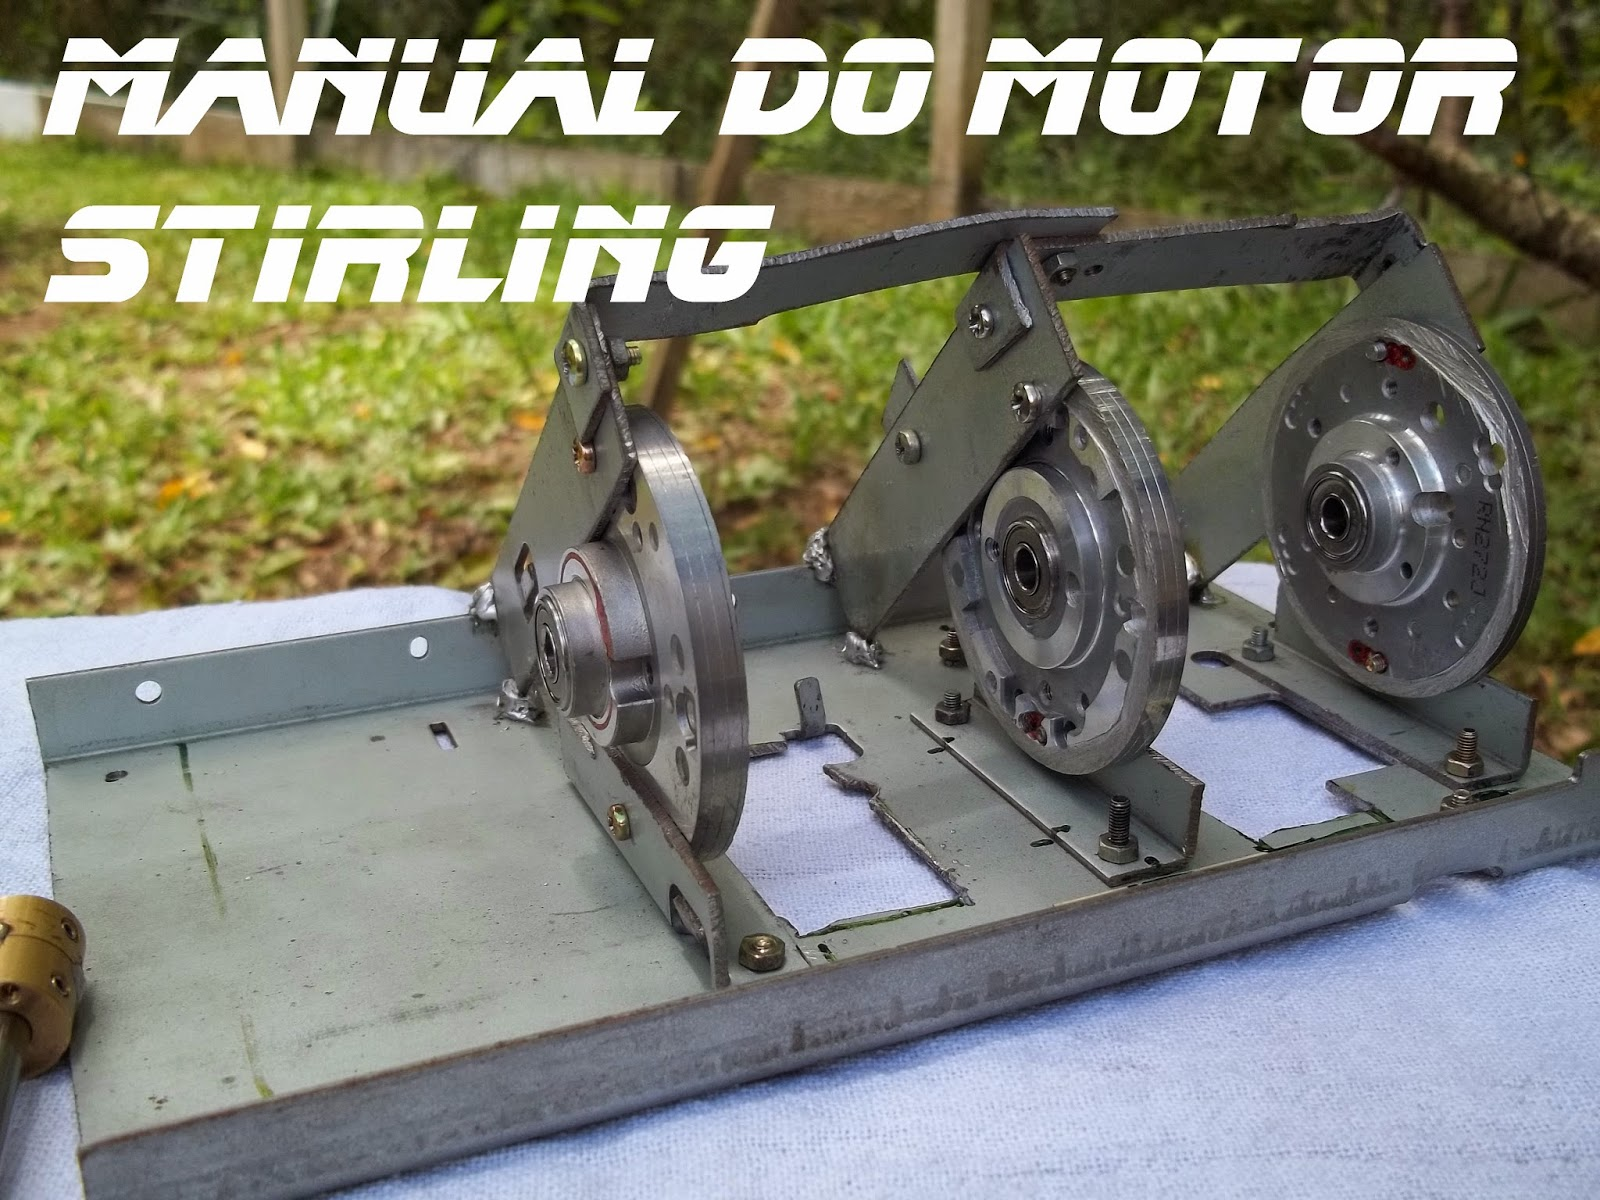 Terceiro cabeçote de vídeo cassete sobre a base do motor, Manual do motor Stirling